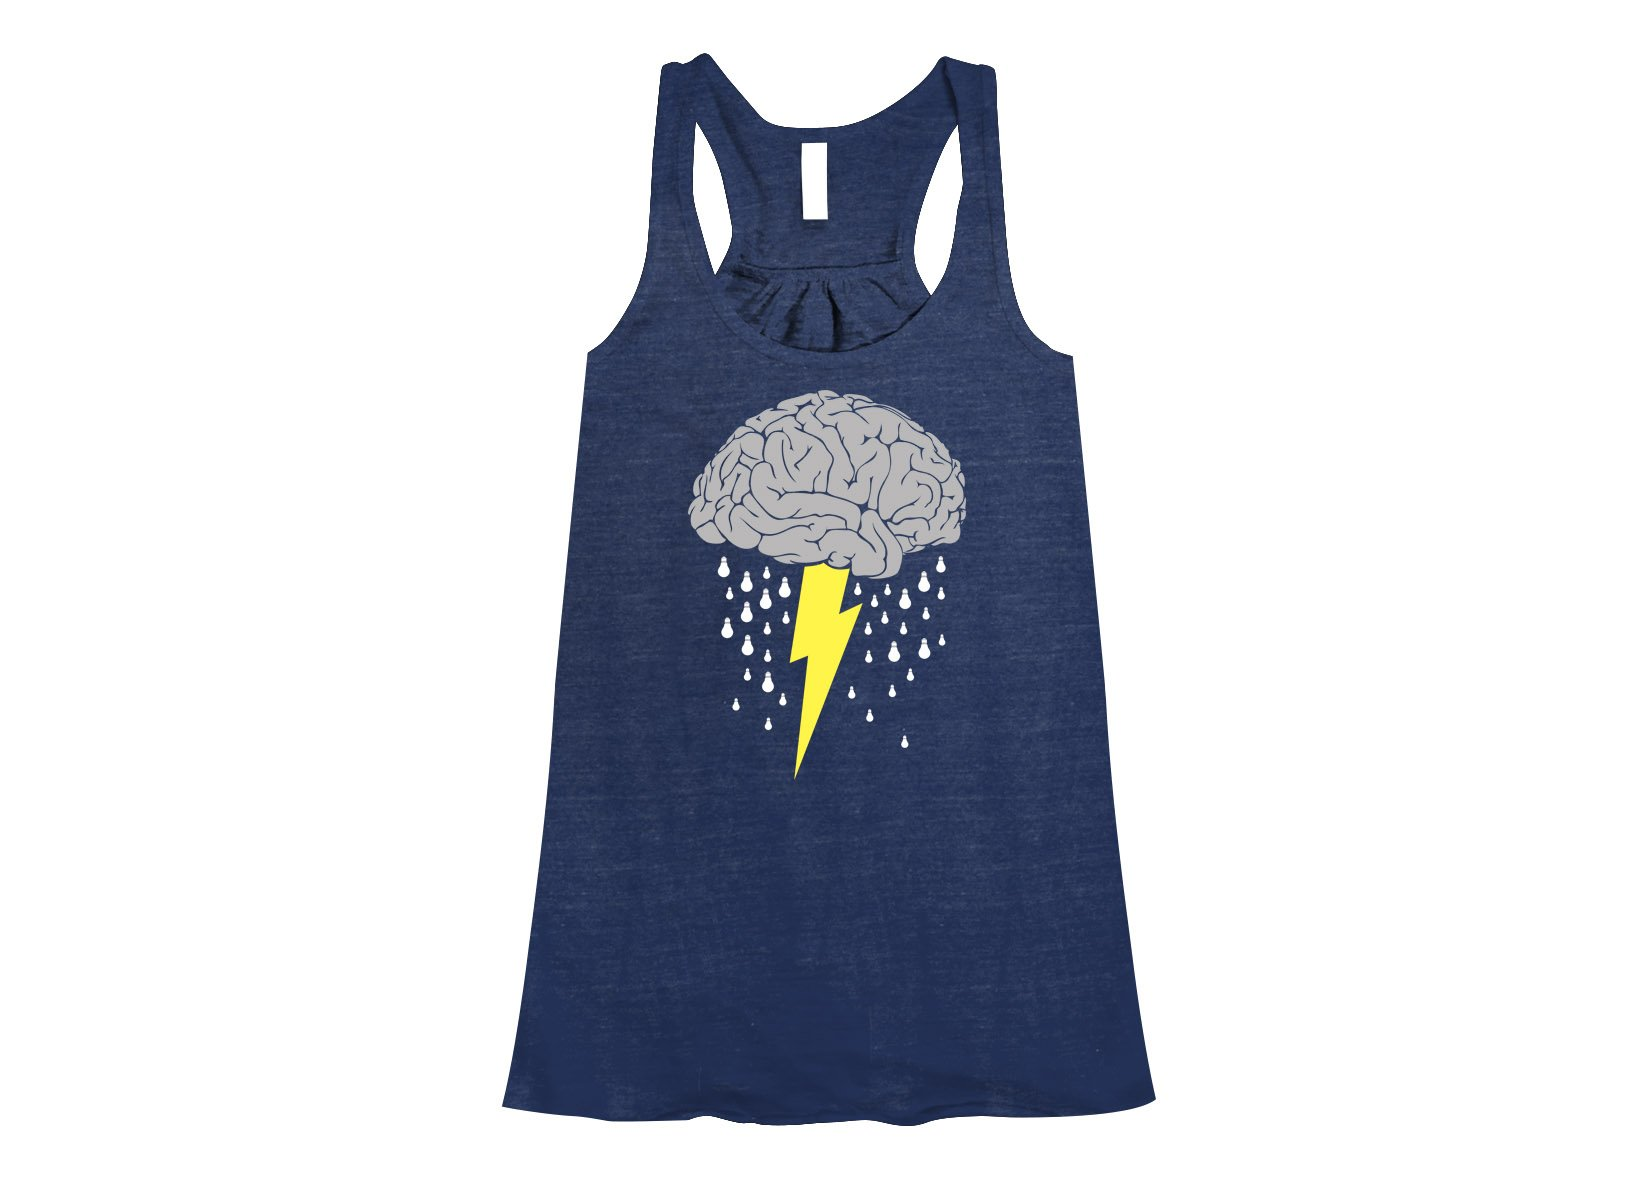 Brainstorm on Womens Tanks T-Shirt